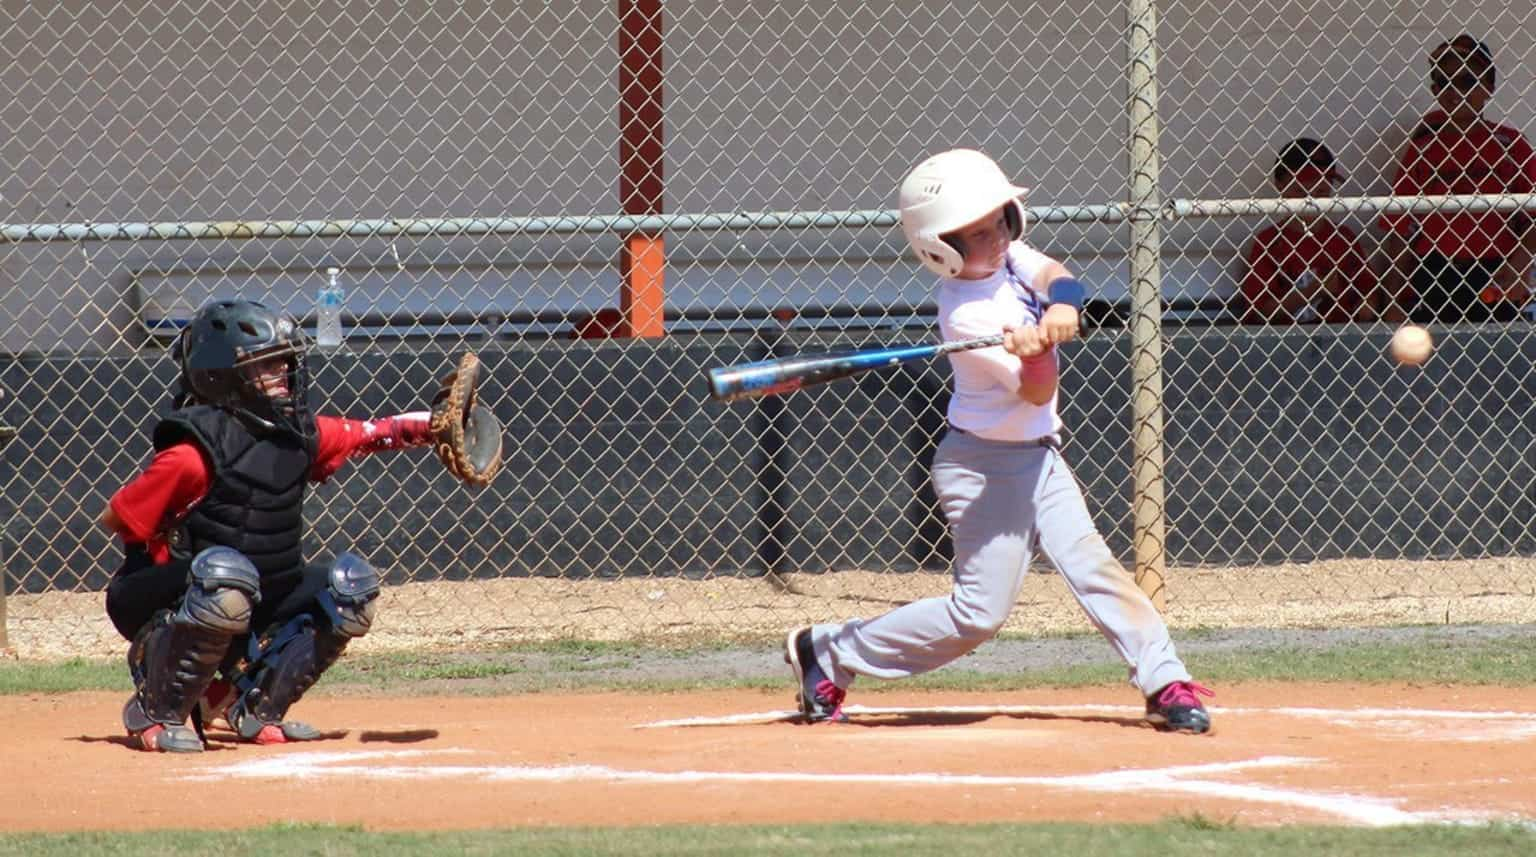 batter at the plate